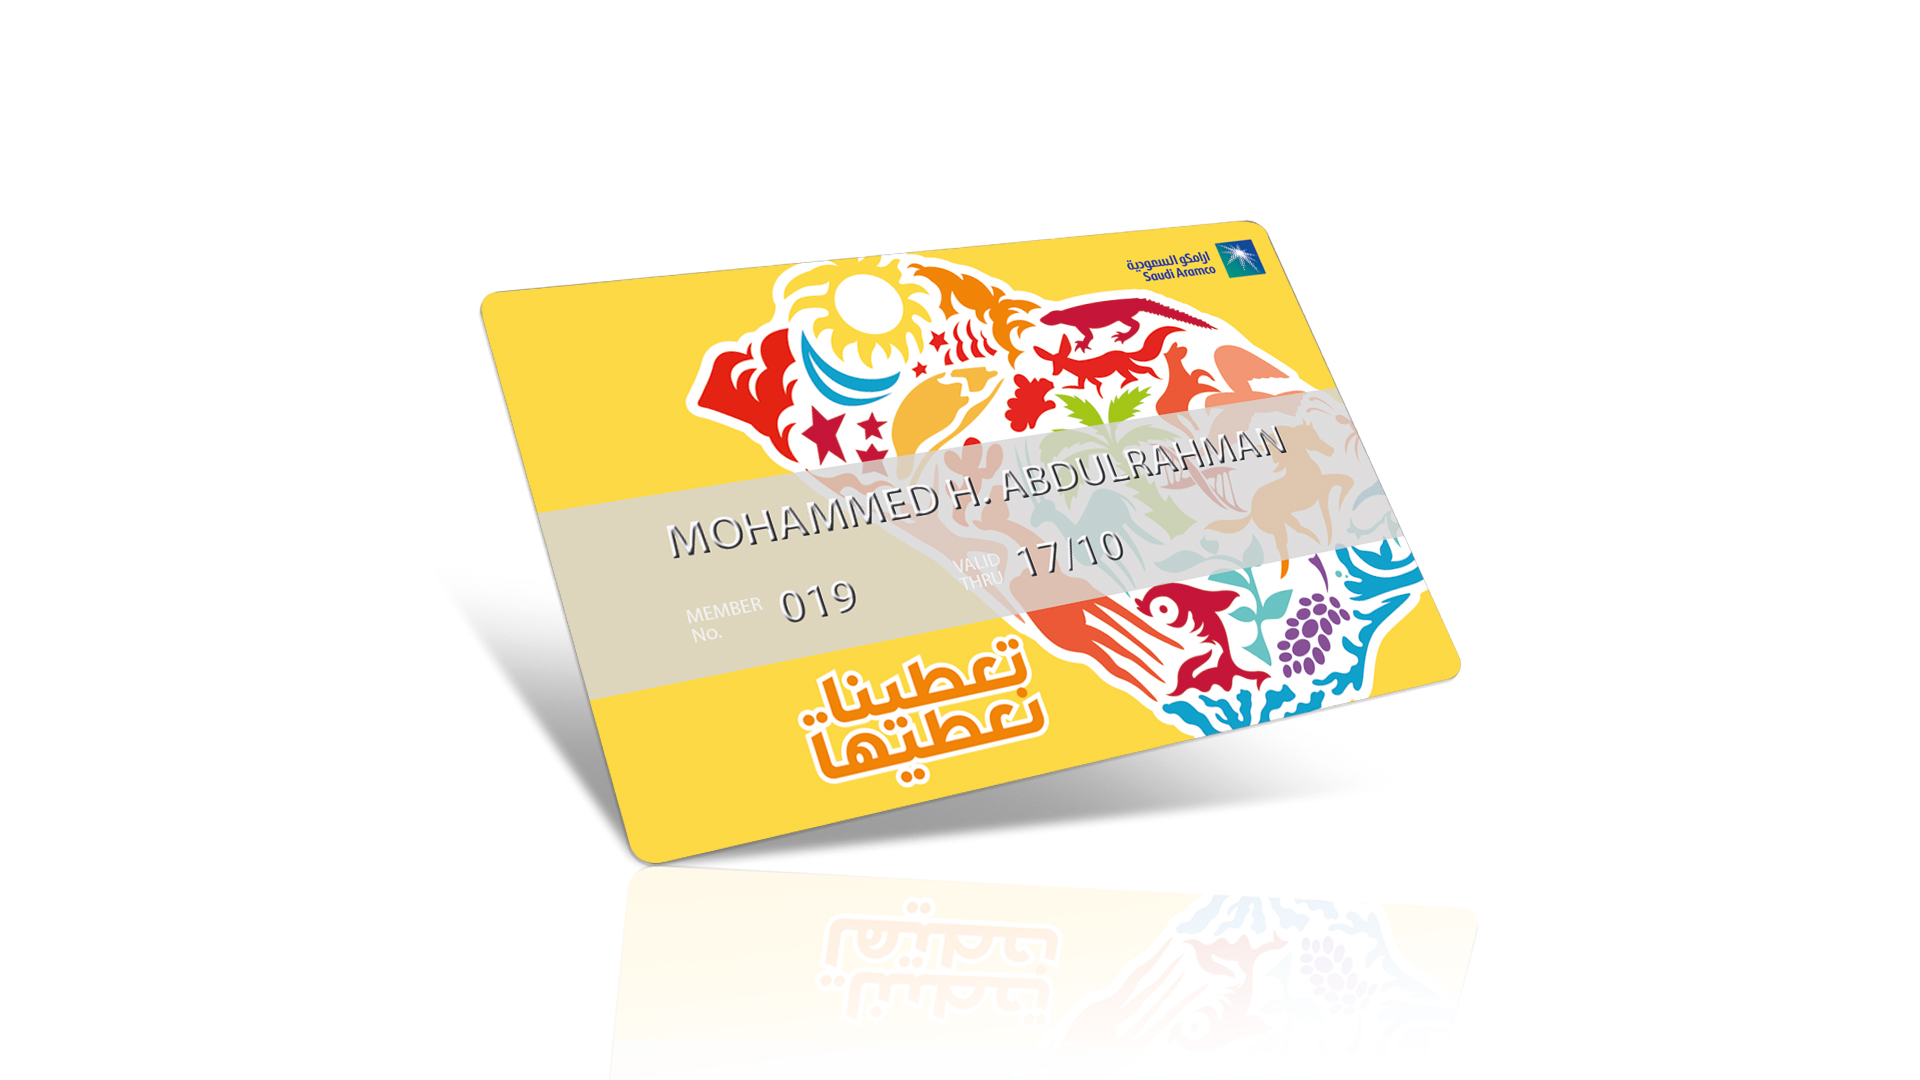 ARAMCO-EVENT-MEMBERSHIP-CARD